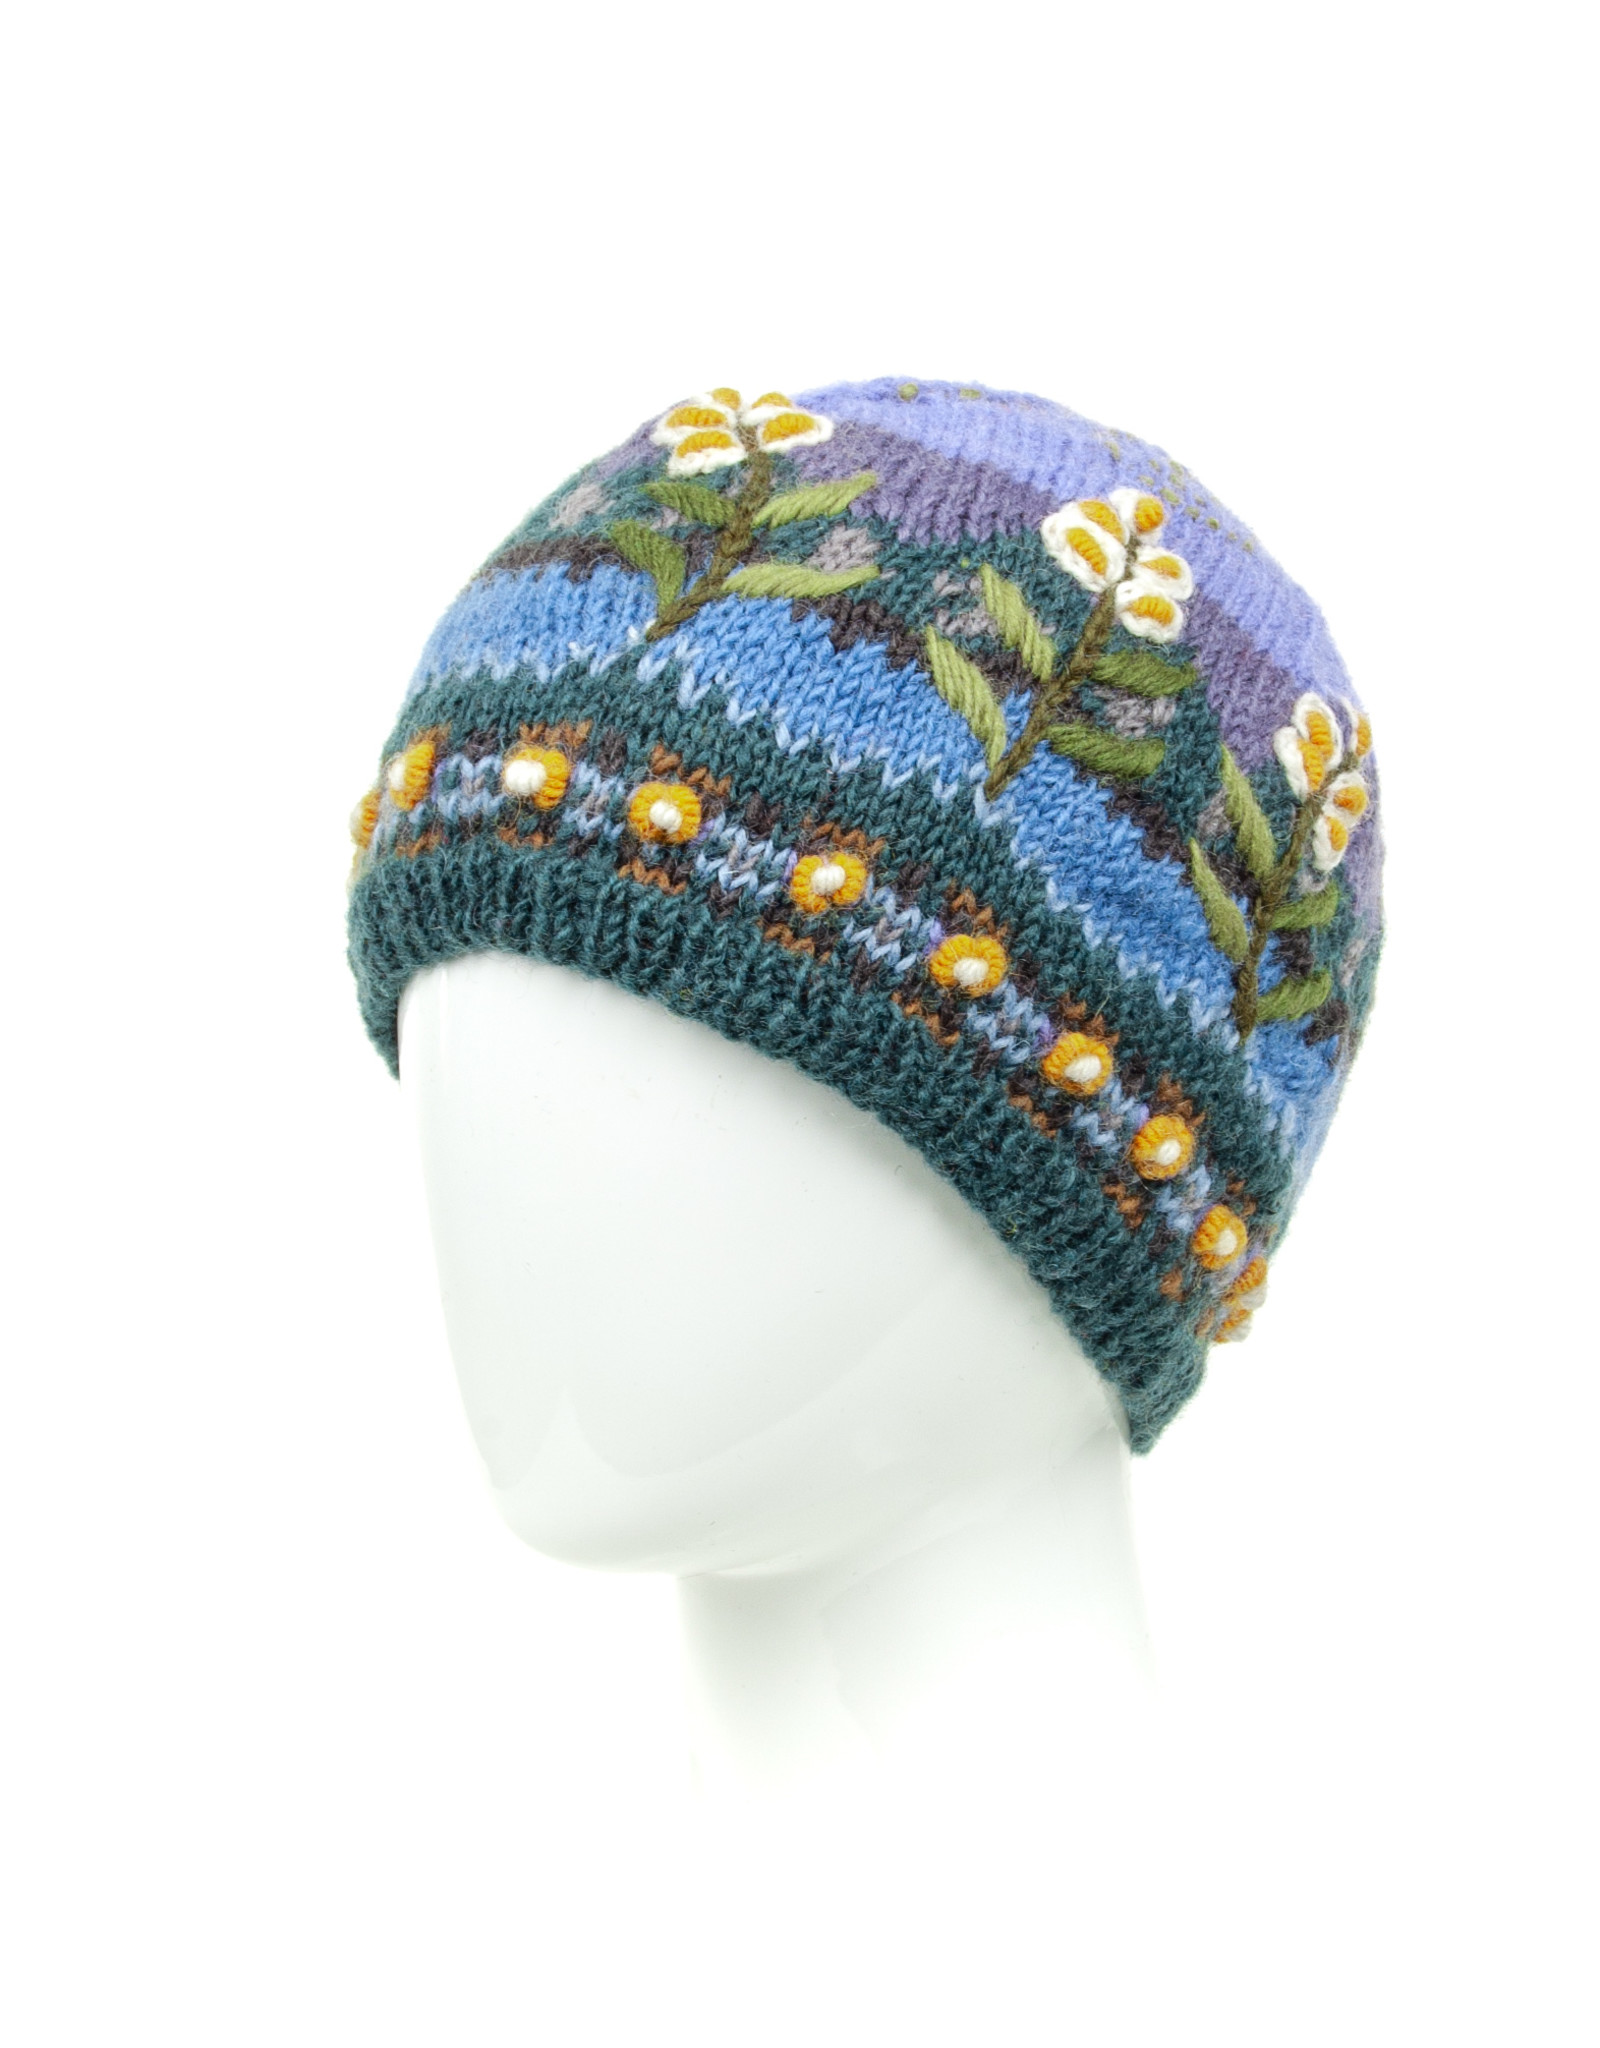 Lost Horizons Chloe Knitted Hat, Nepal.